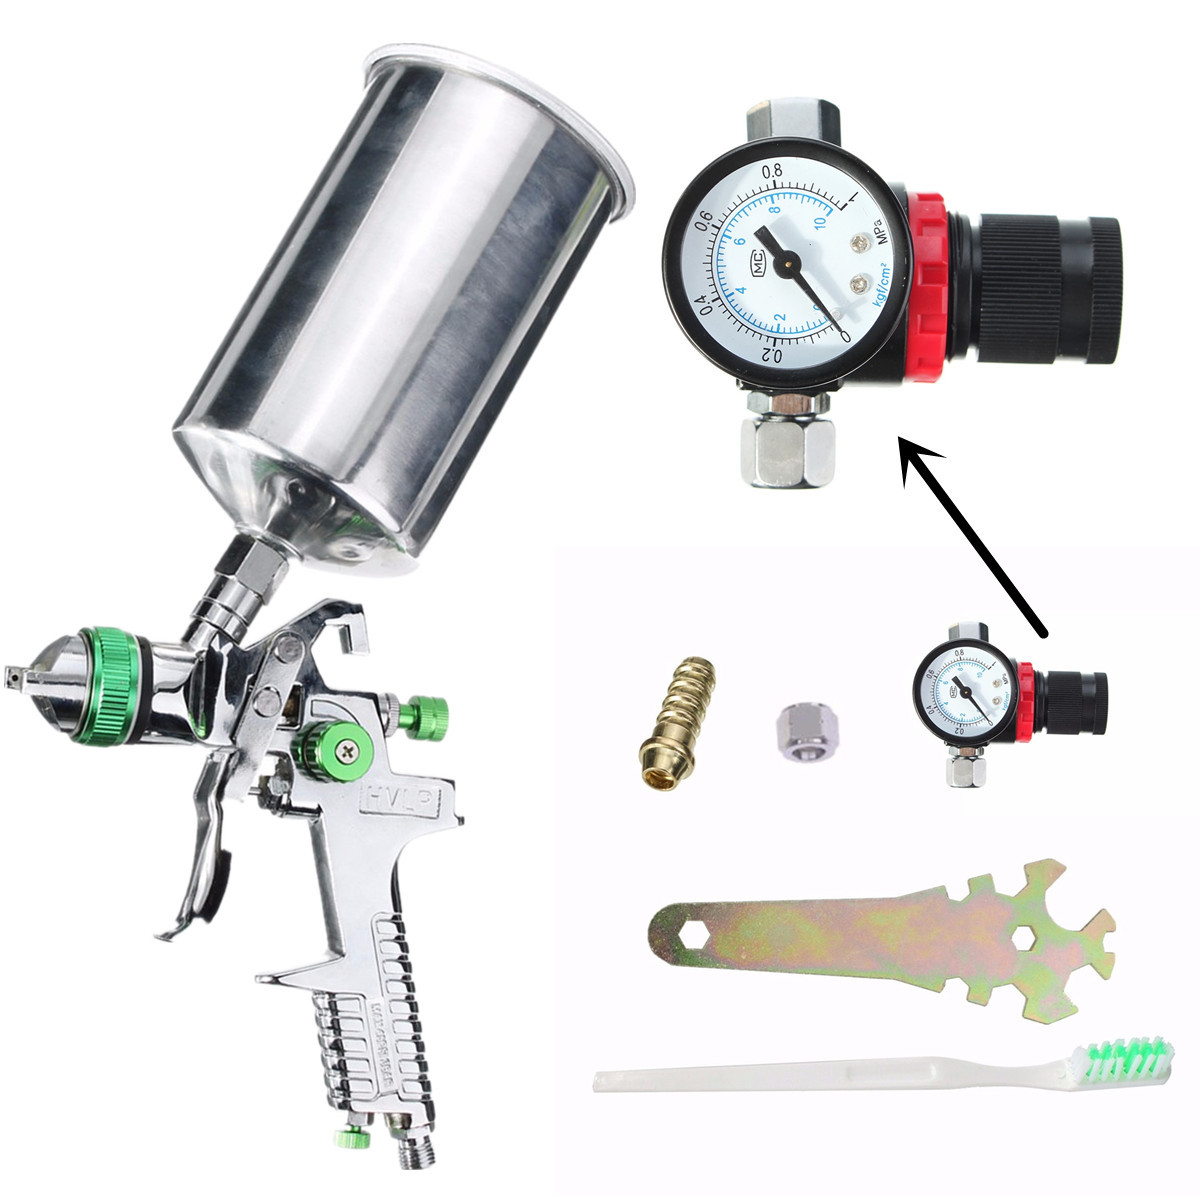 2.5mm 600cc HVLP Gravity Feed Spray Gun Kit Auto Paint Primer Metal Flake with Regulator